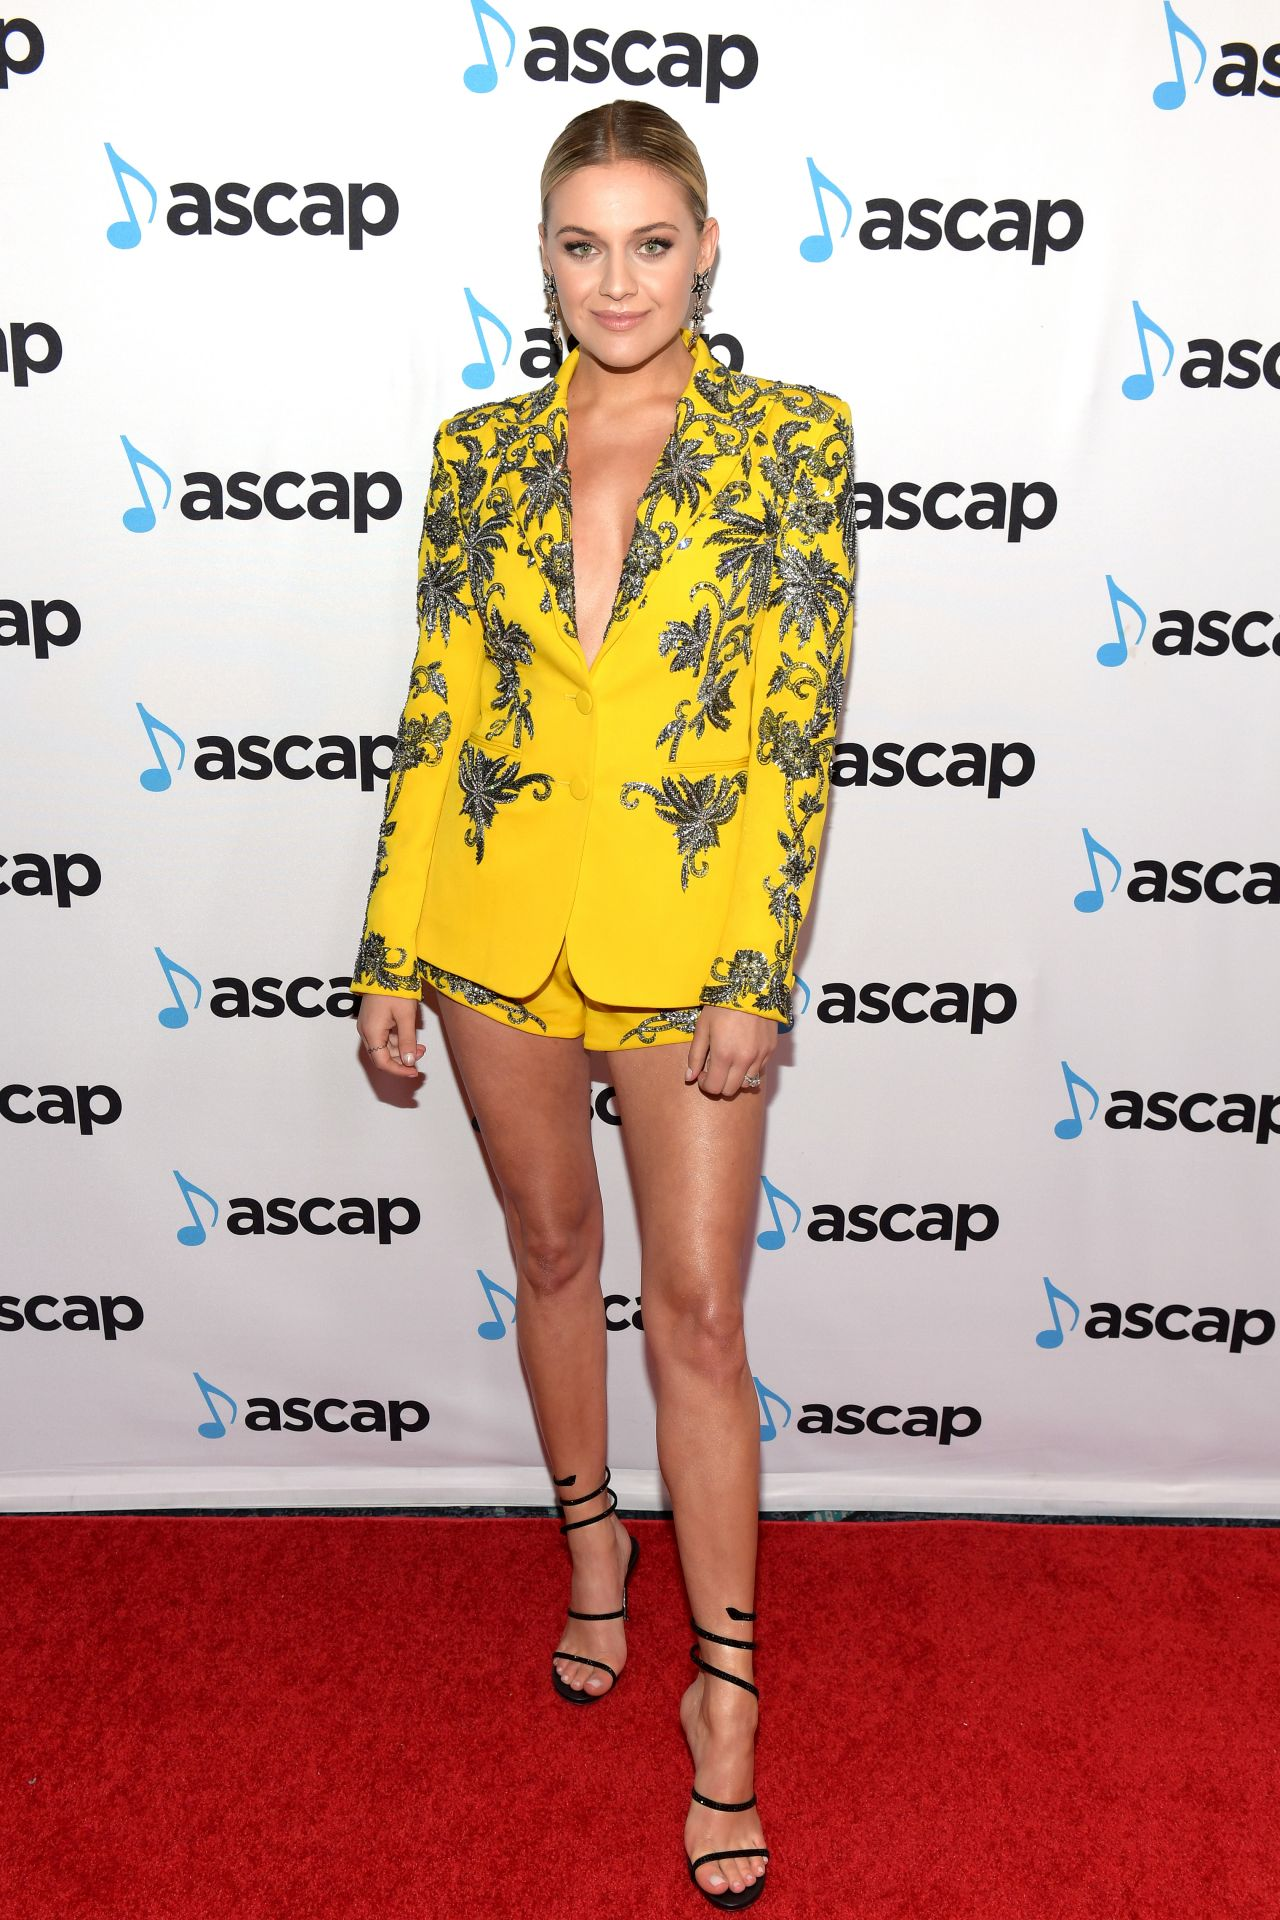 kelsea-ballerini-in-dundas-2019-ascap-country-music-awards